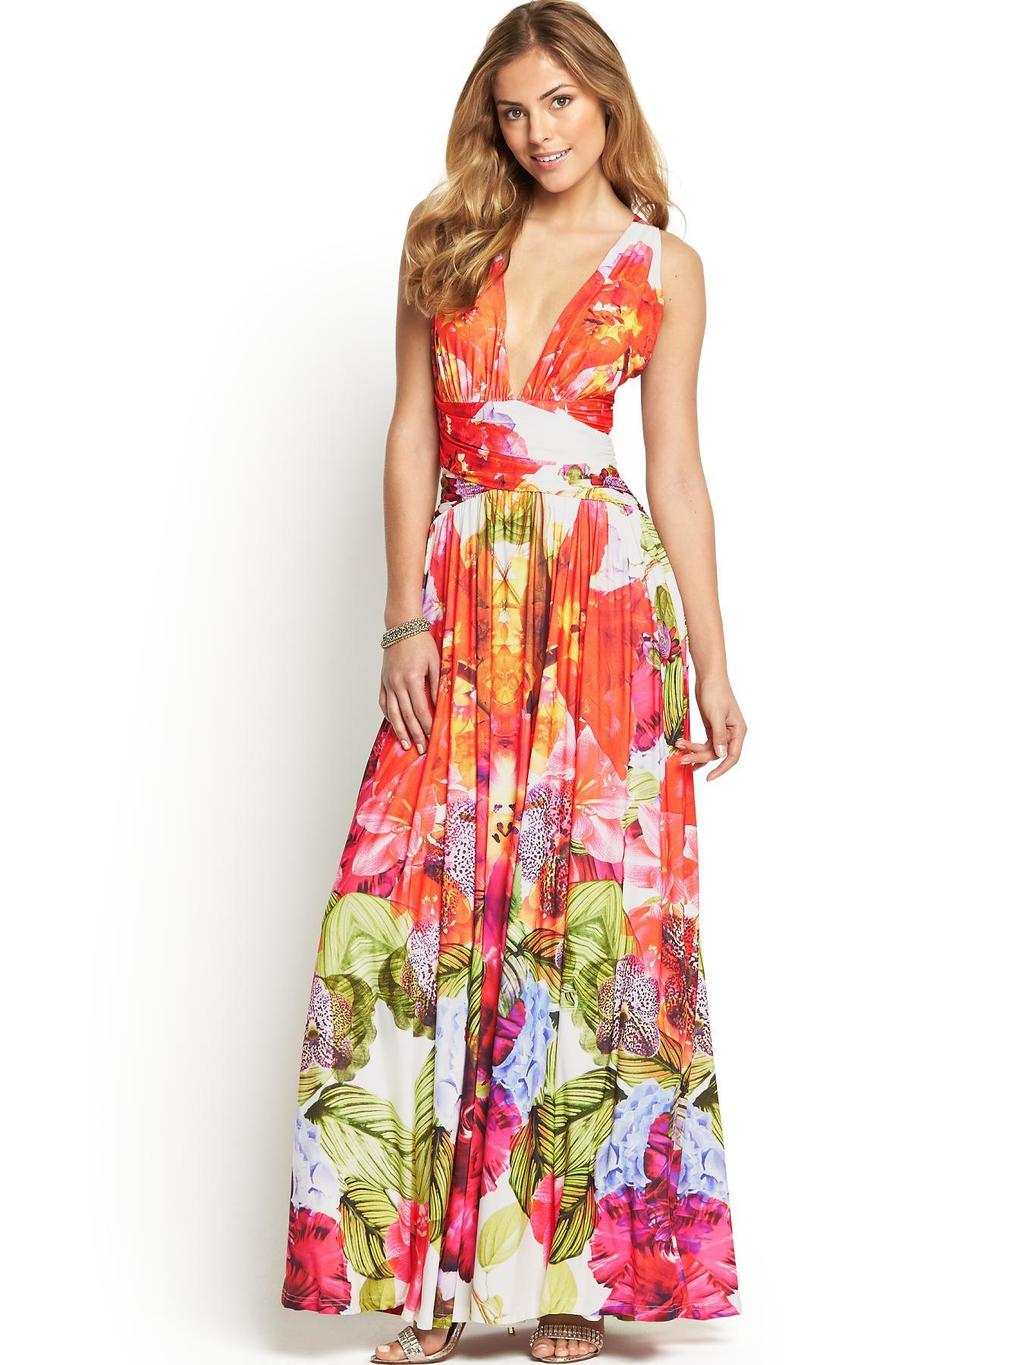 Kayla Print Maxi Dress - neckline: plunge; sleeve style: sleeveless; style: maxi dress; occasions: casual, evening; length: floor length; fit: fitted at waist & bust; fibres: polyester/polyamide - stretch; predominant colour: multicoloured; sleeve length: sleeveless; pattern type: fabric; pattern size: big & busy; pattern: florals; texture group: jersey - stretchy/drapey; trends: furious florals; season: s/s 2014; multicoloured: multicoloured